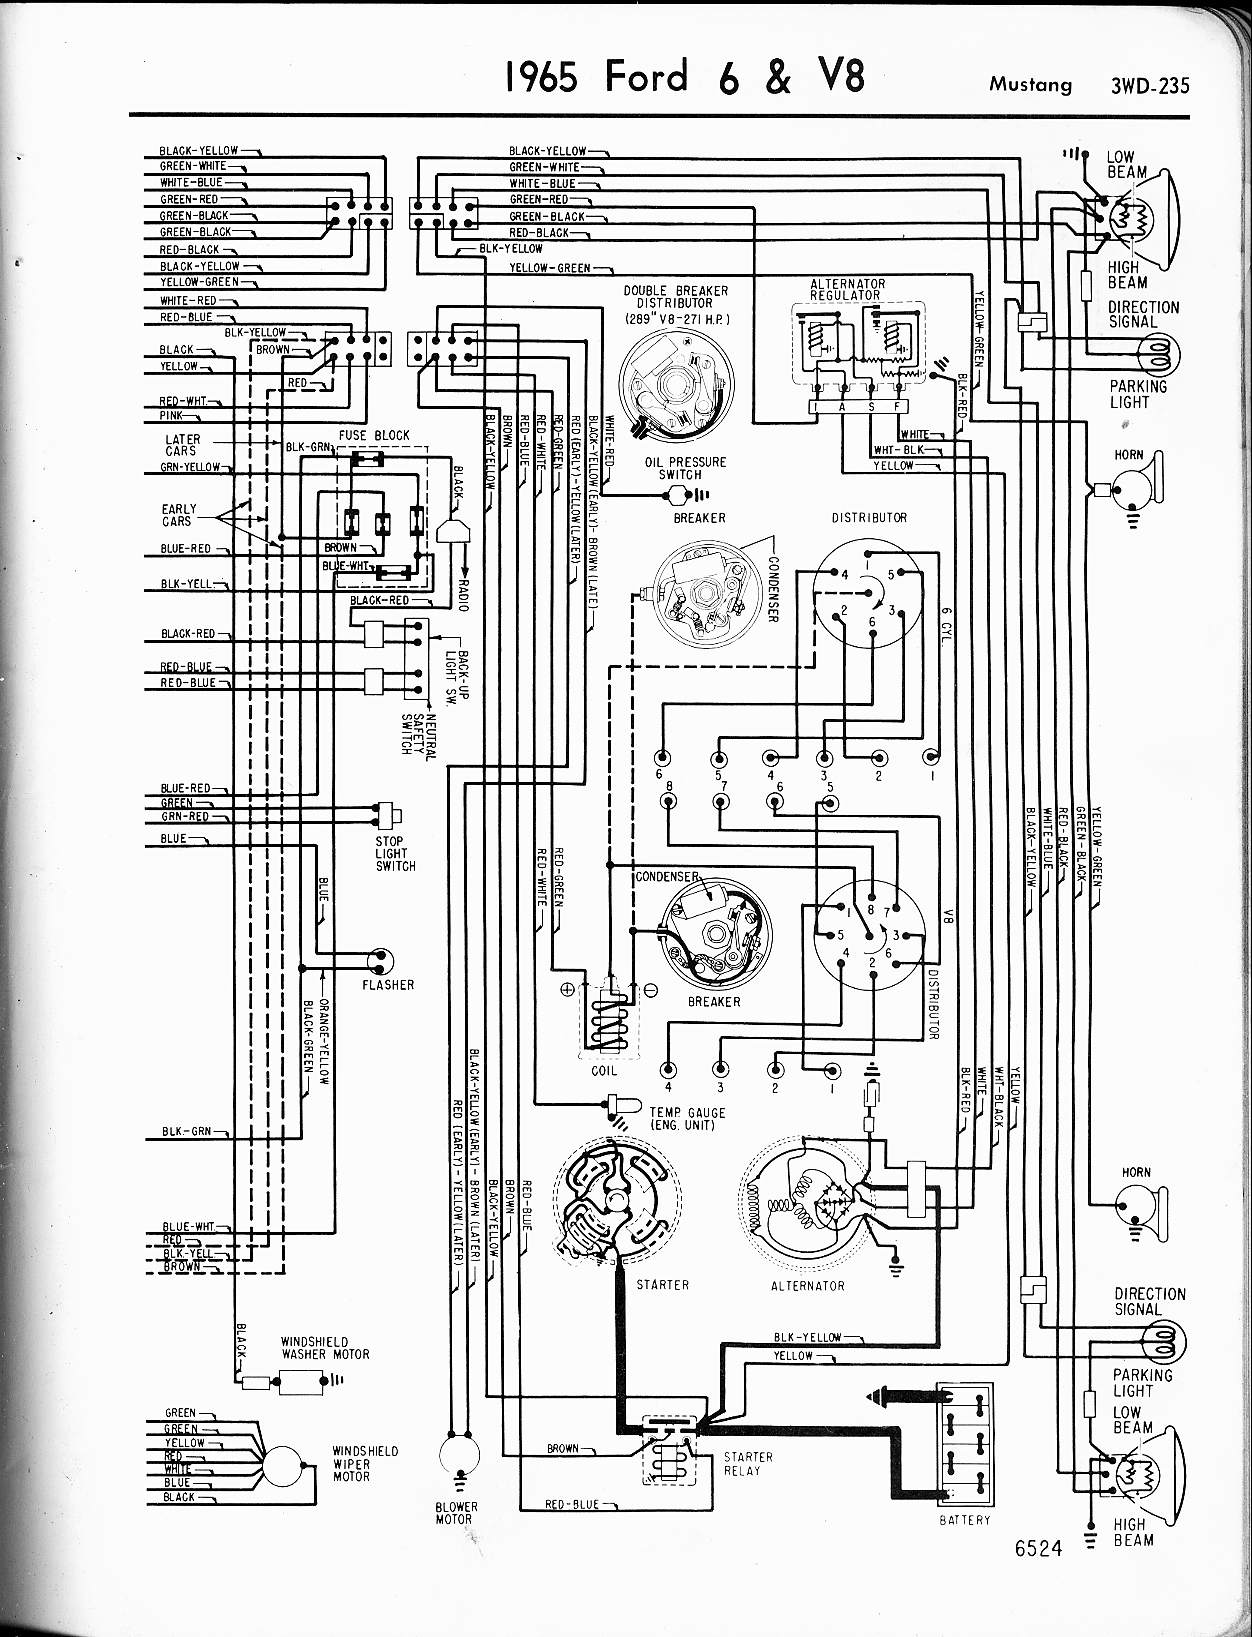 MWire5765 235 57 65 ford wiring diagrams 1970 ford mustang wiring diagram at n-0.co